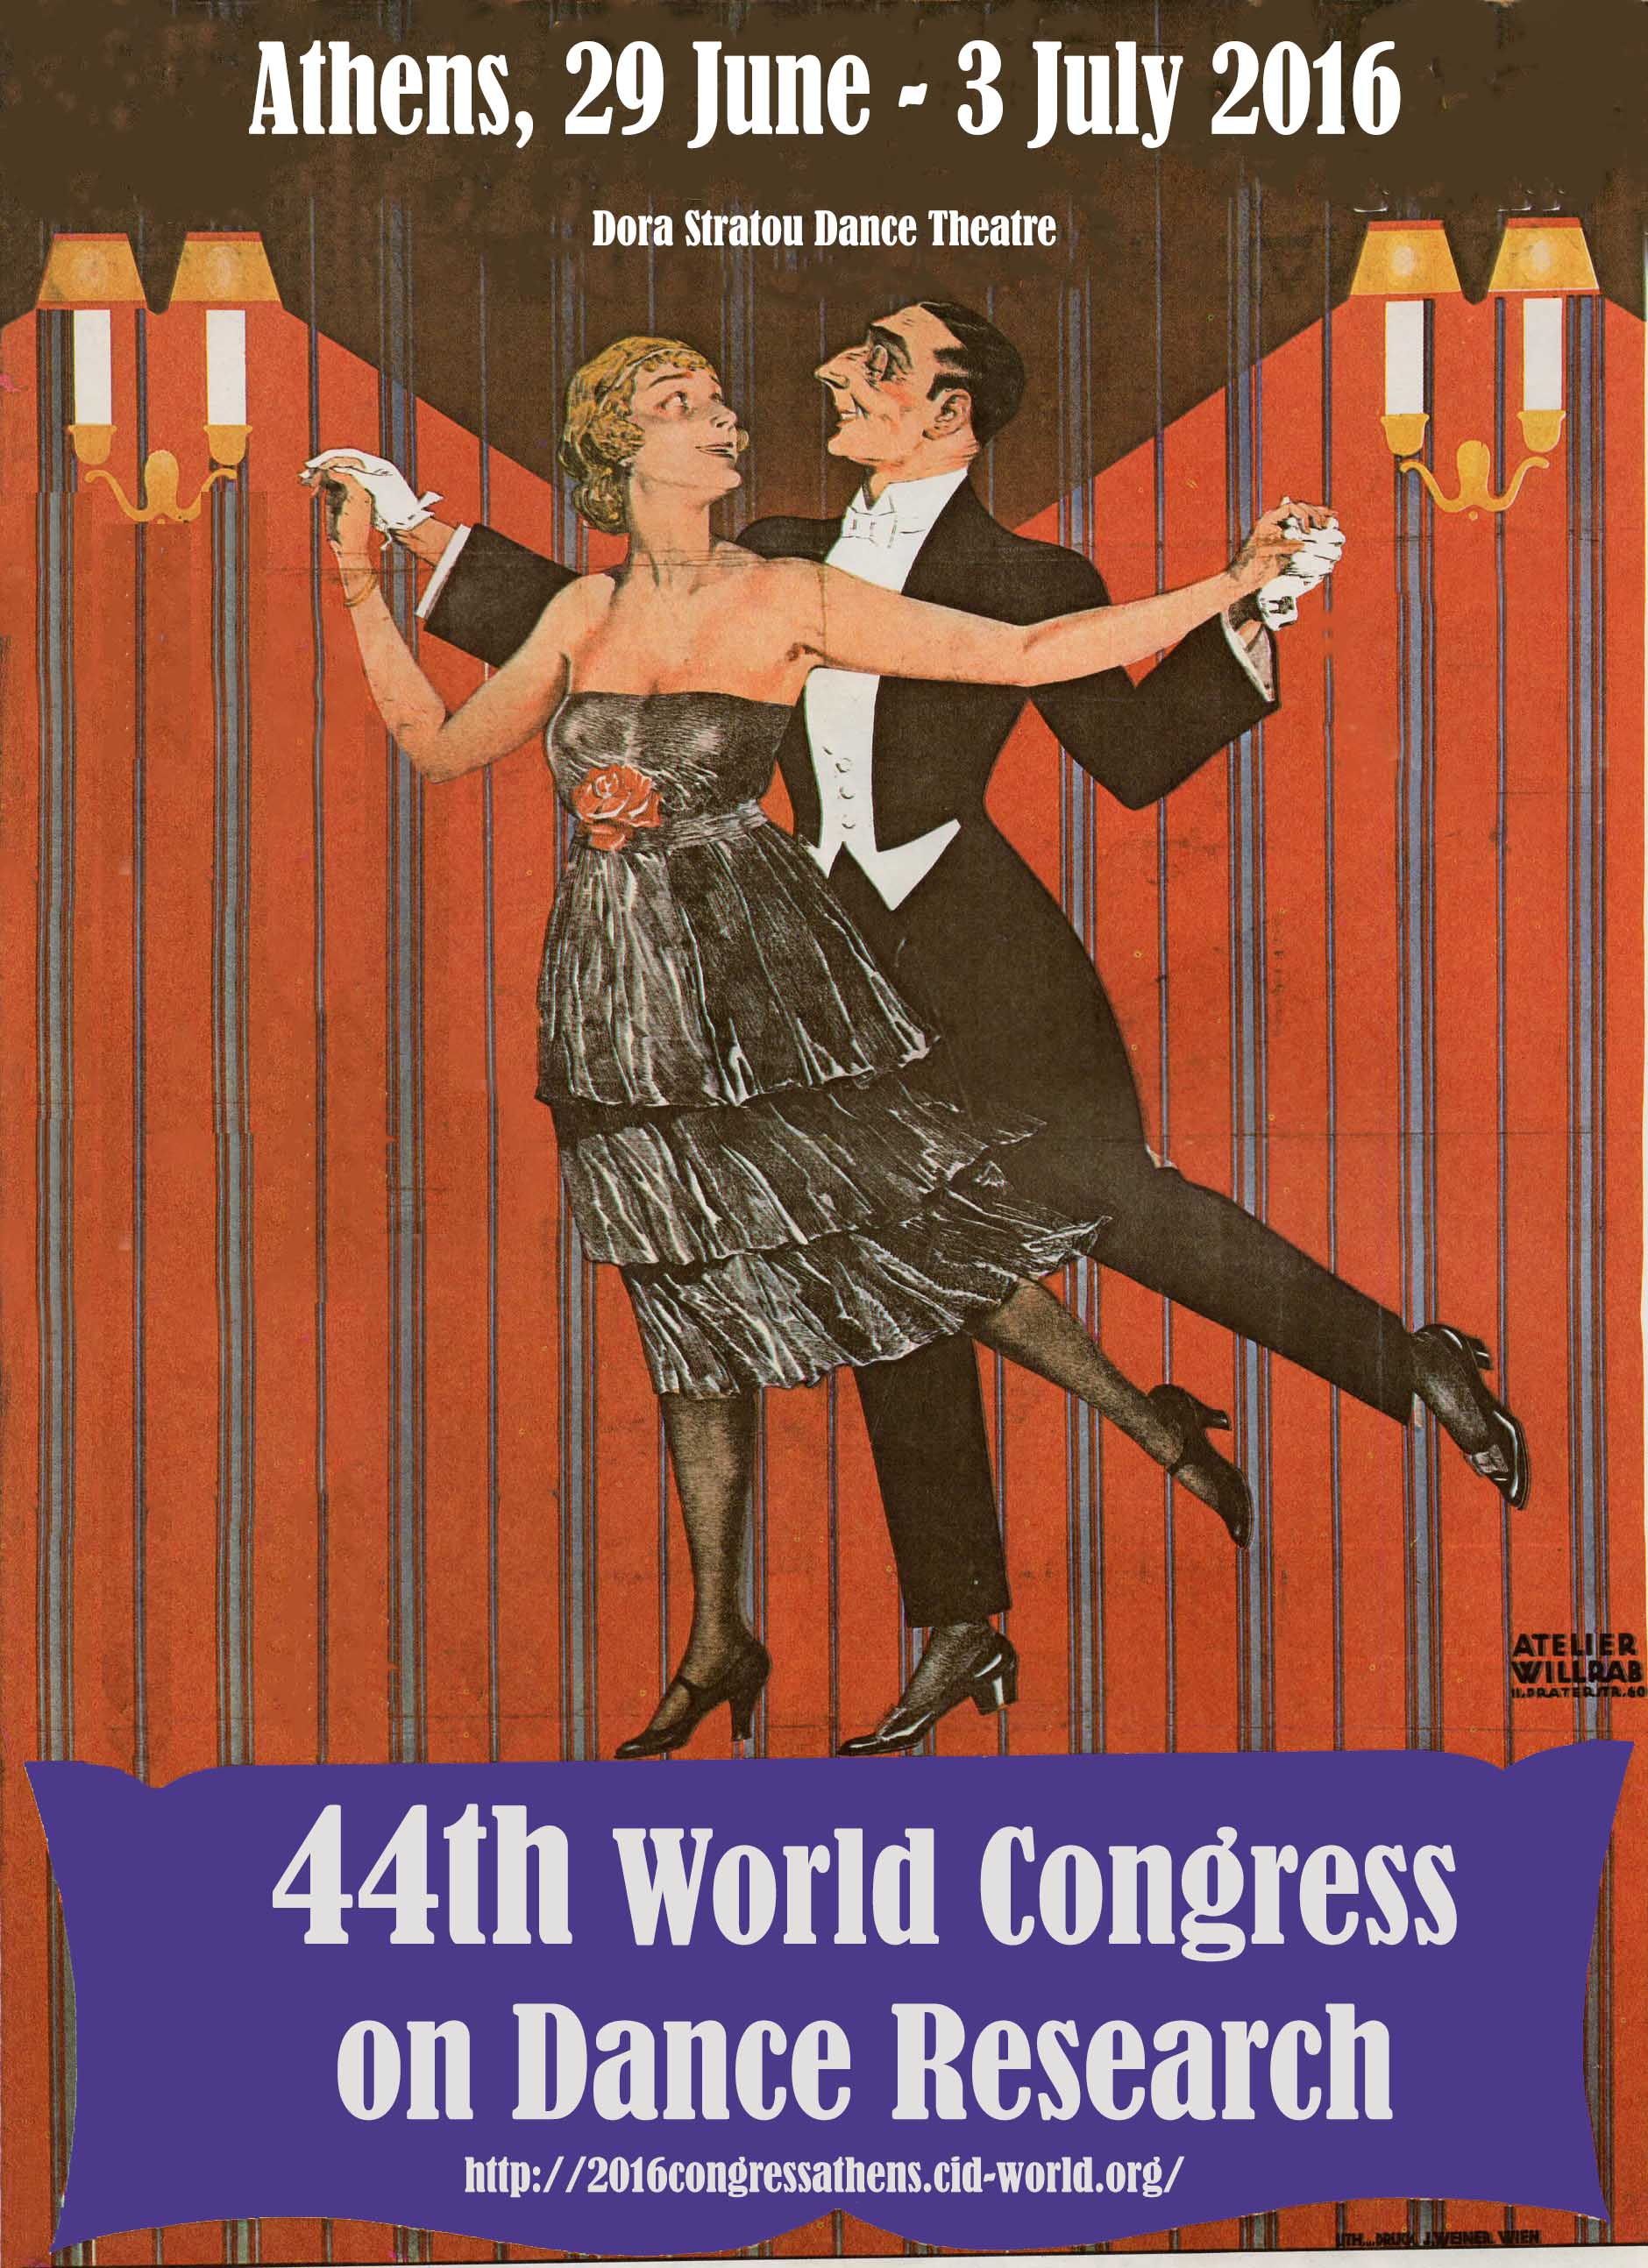 CID 44th International World Congress on Dance Research